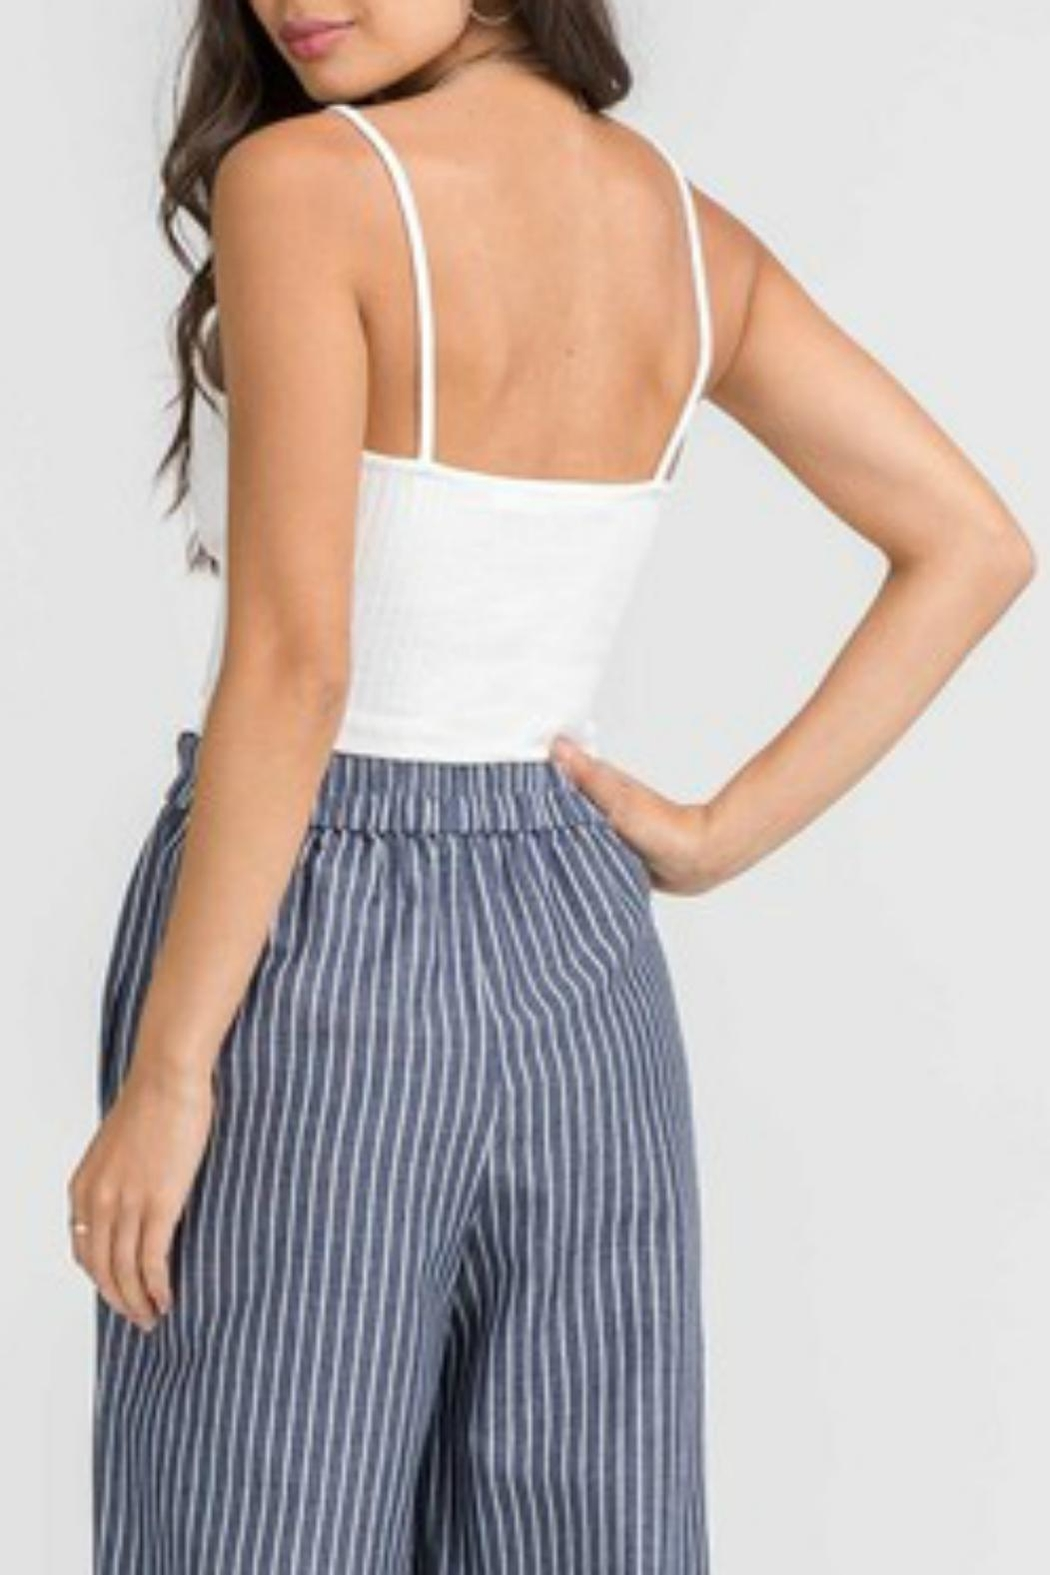 Pretty Little Things Crossover Crop Top - Front Full Image